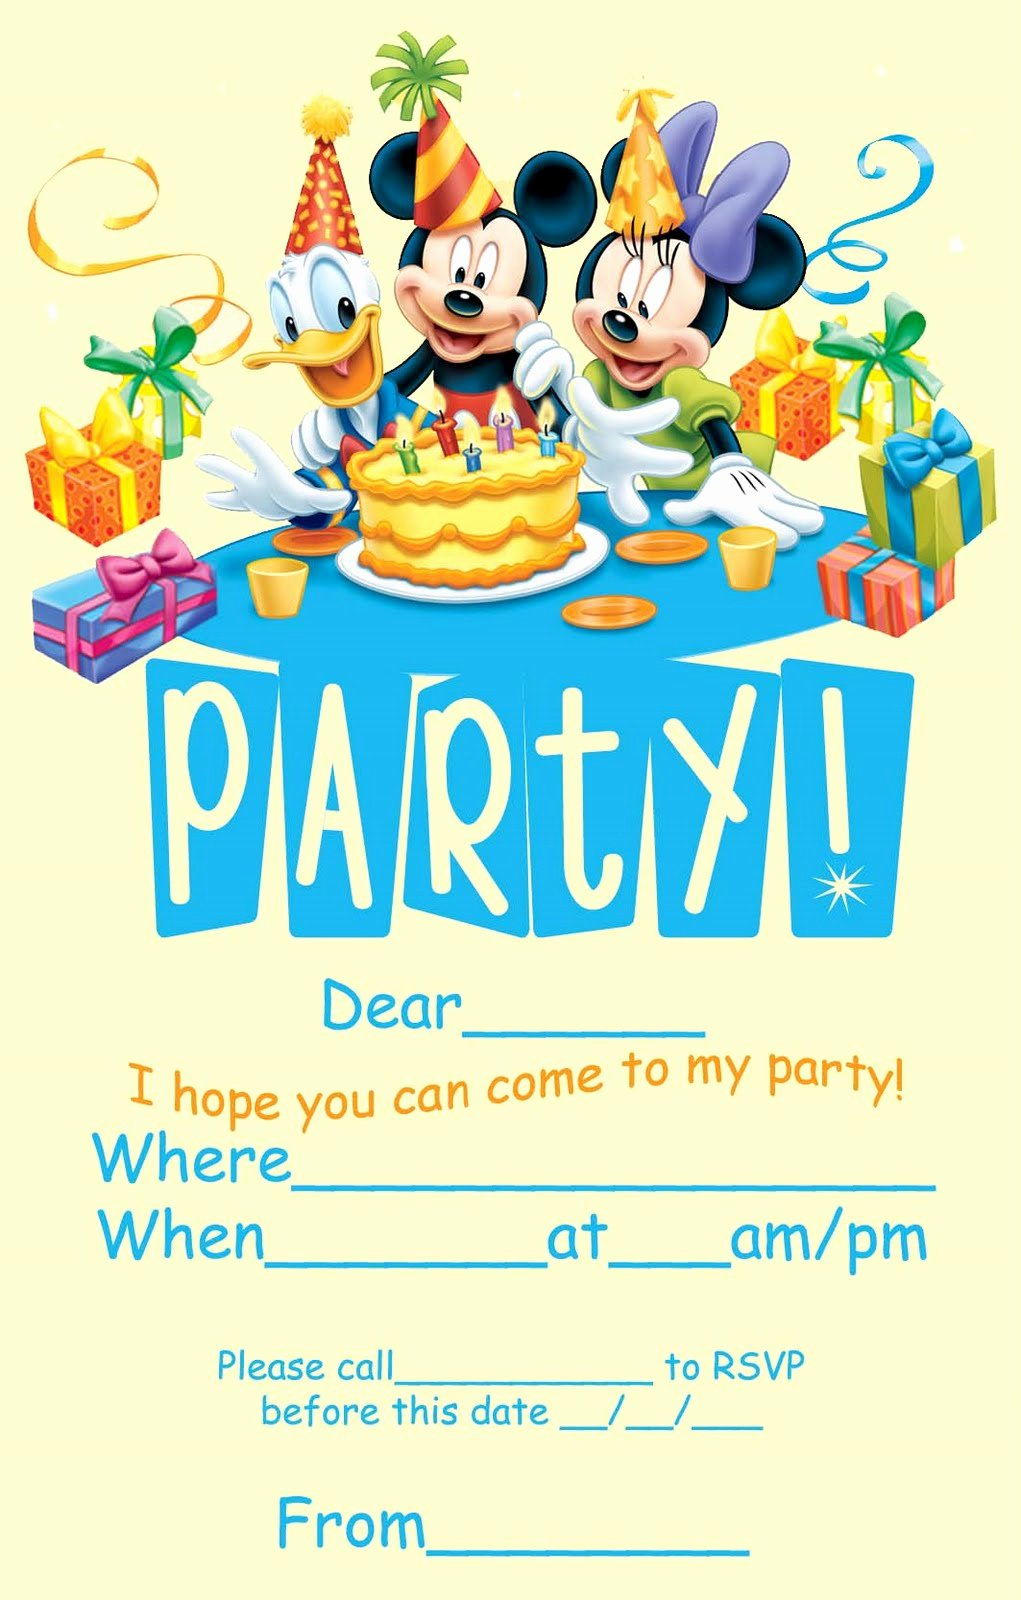 Disney Printable Birthday Cards Fresh Ideas for A Perfect Disney Fairy Tale themed Birthday